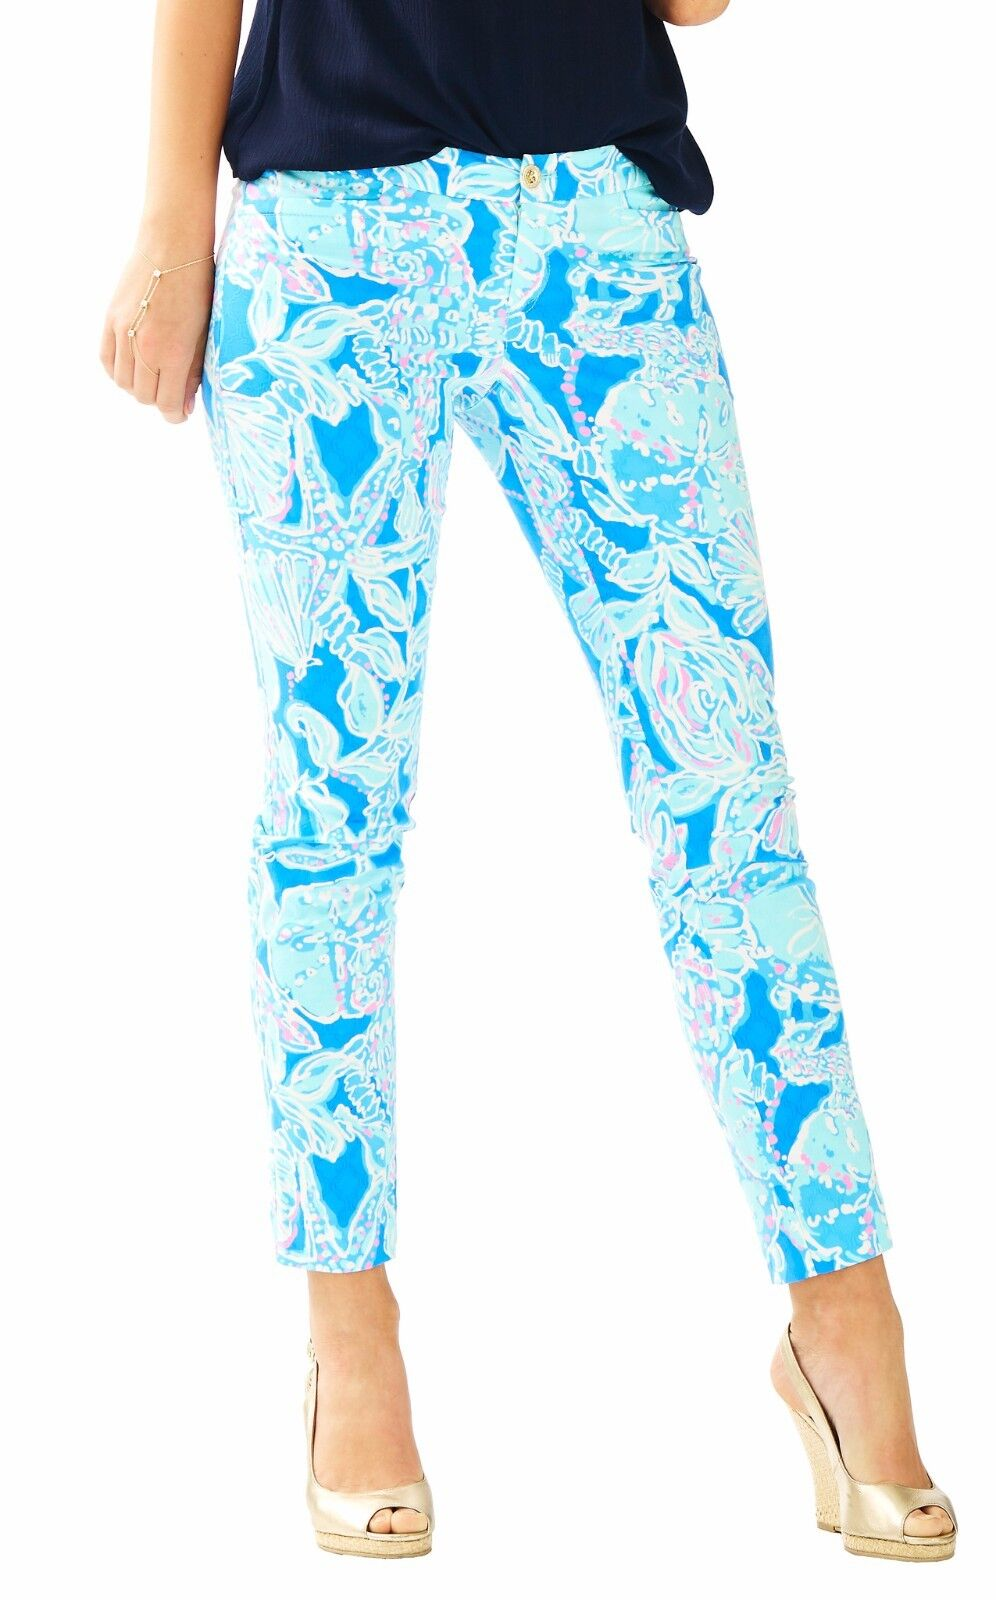 Lilly Pulitzer KELLY PANTS Skinny Ankle Pant BAY blueE the DEEP Starfish  2 4 12